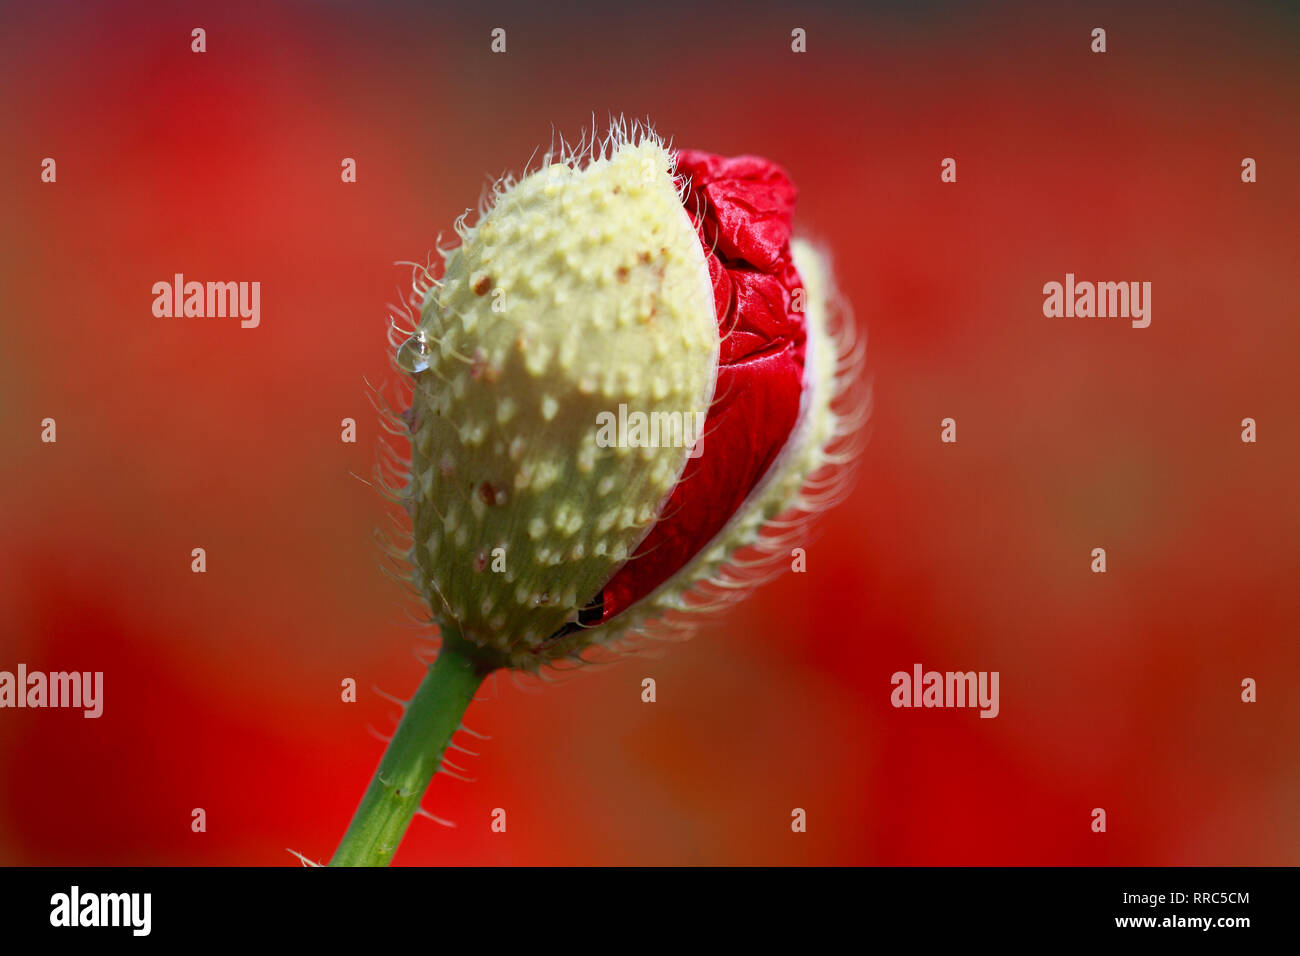 botany, scandal poppy, Papaver rhoeas, Switzerland, Additional-Rights-Clearance-Info-Not-Available - Stock Image